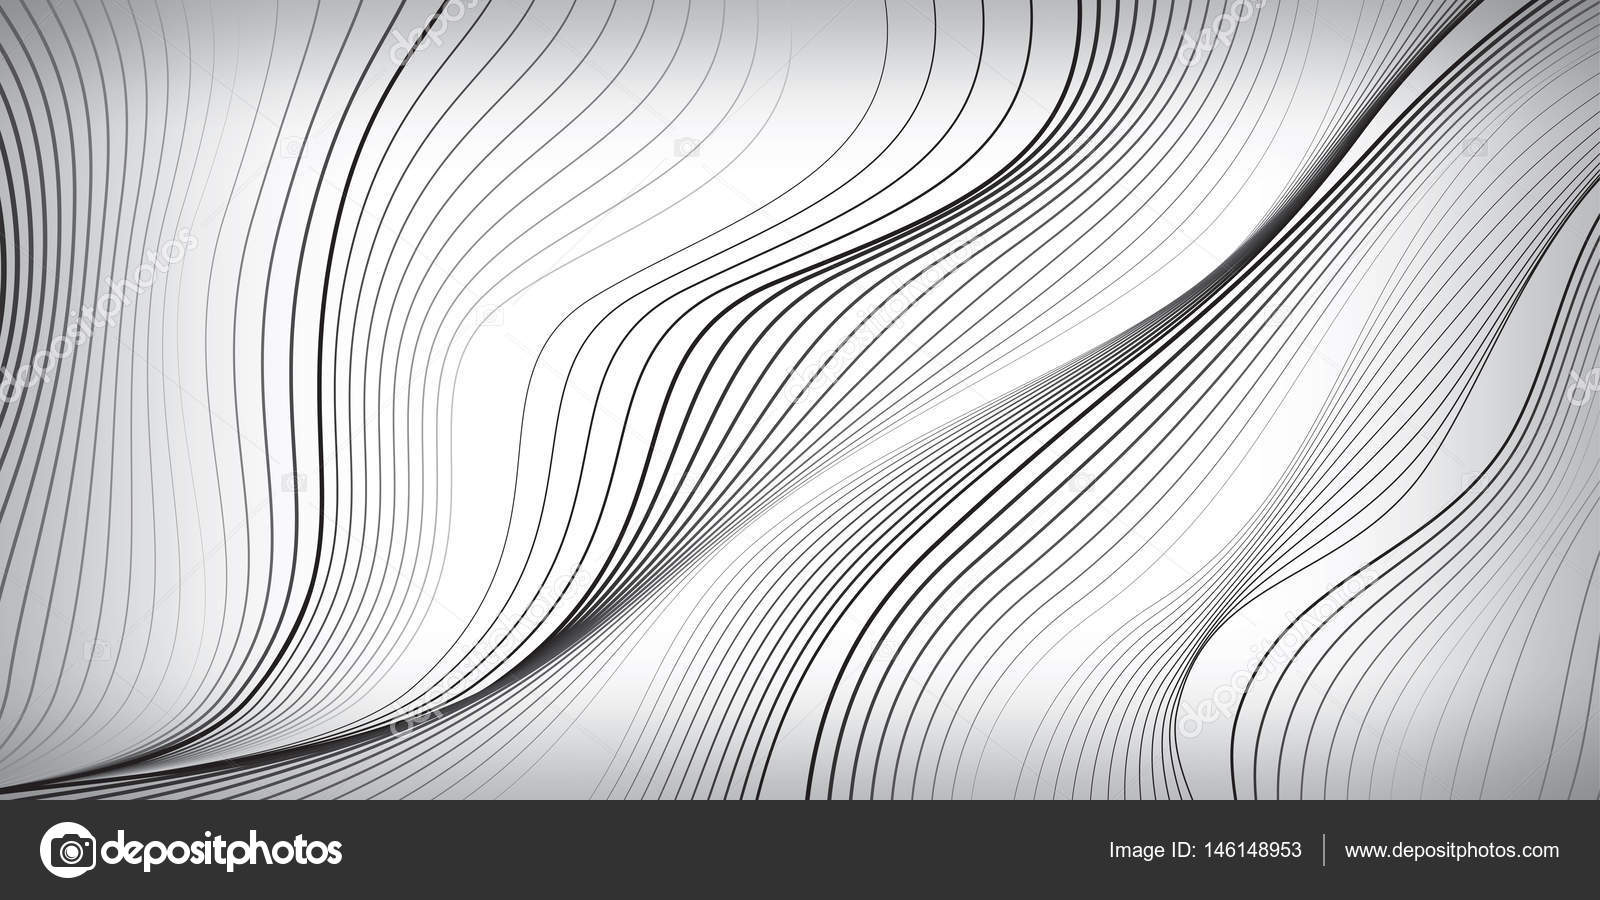 Waves Of Black Lines On White Background Abstract Wallpaper